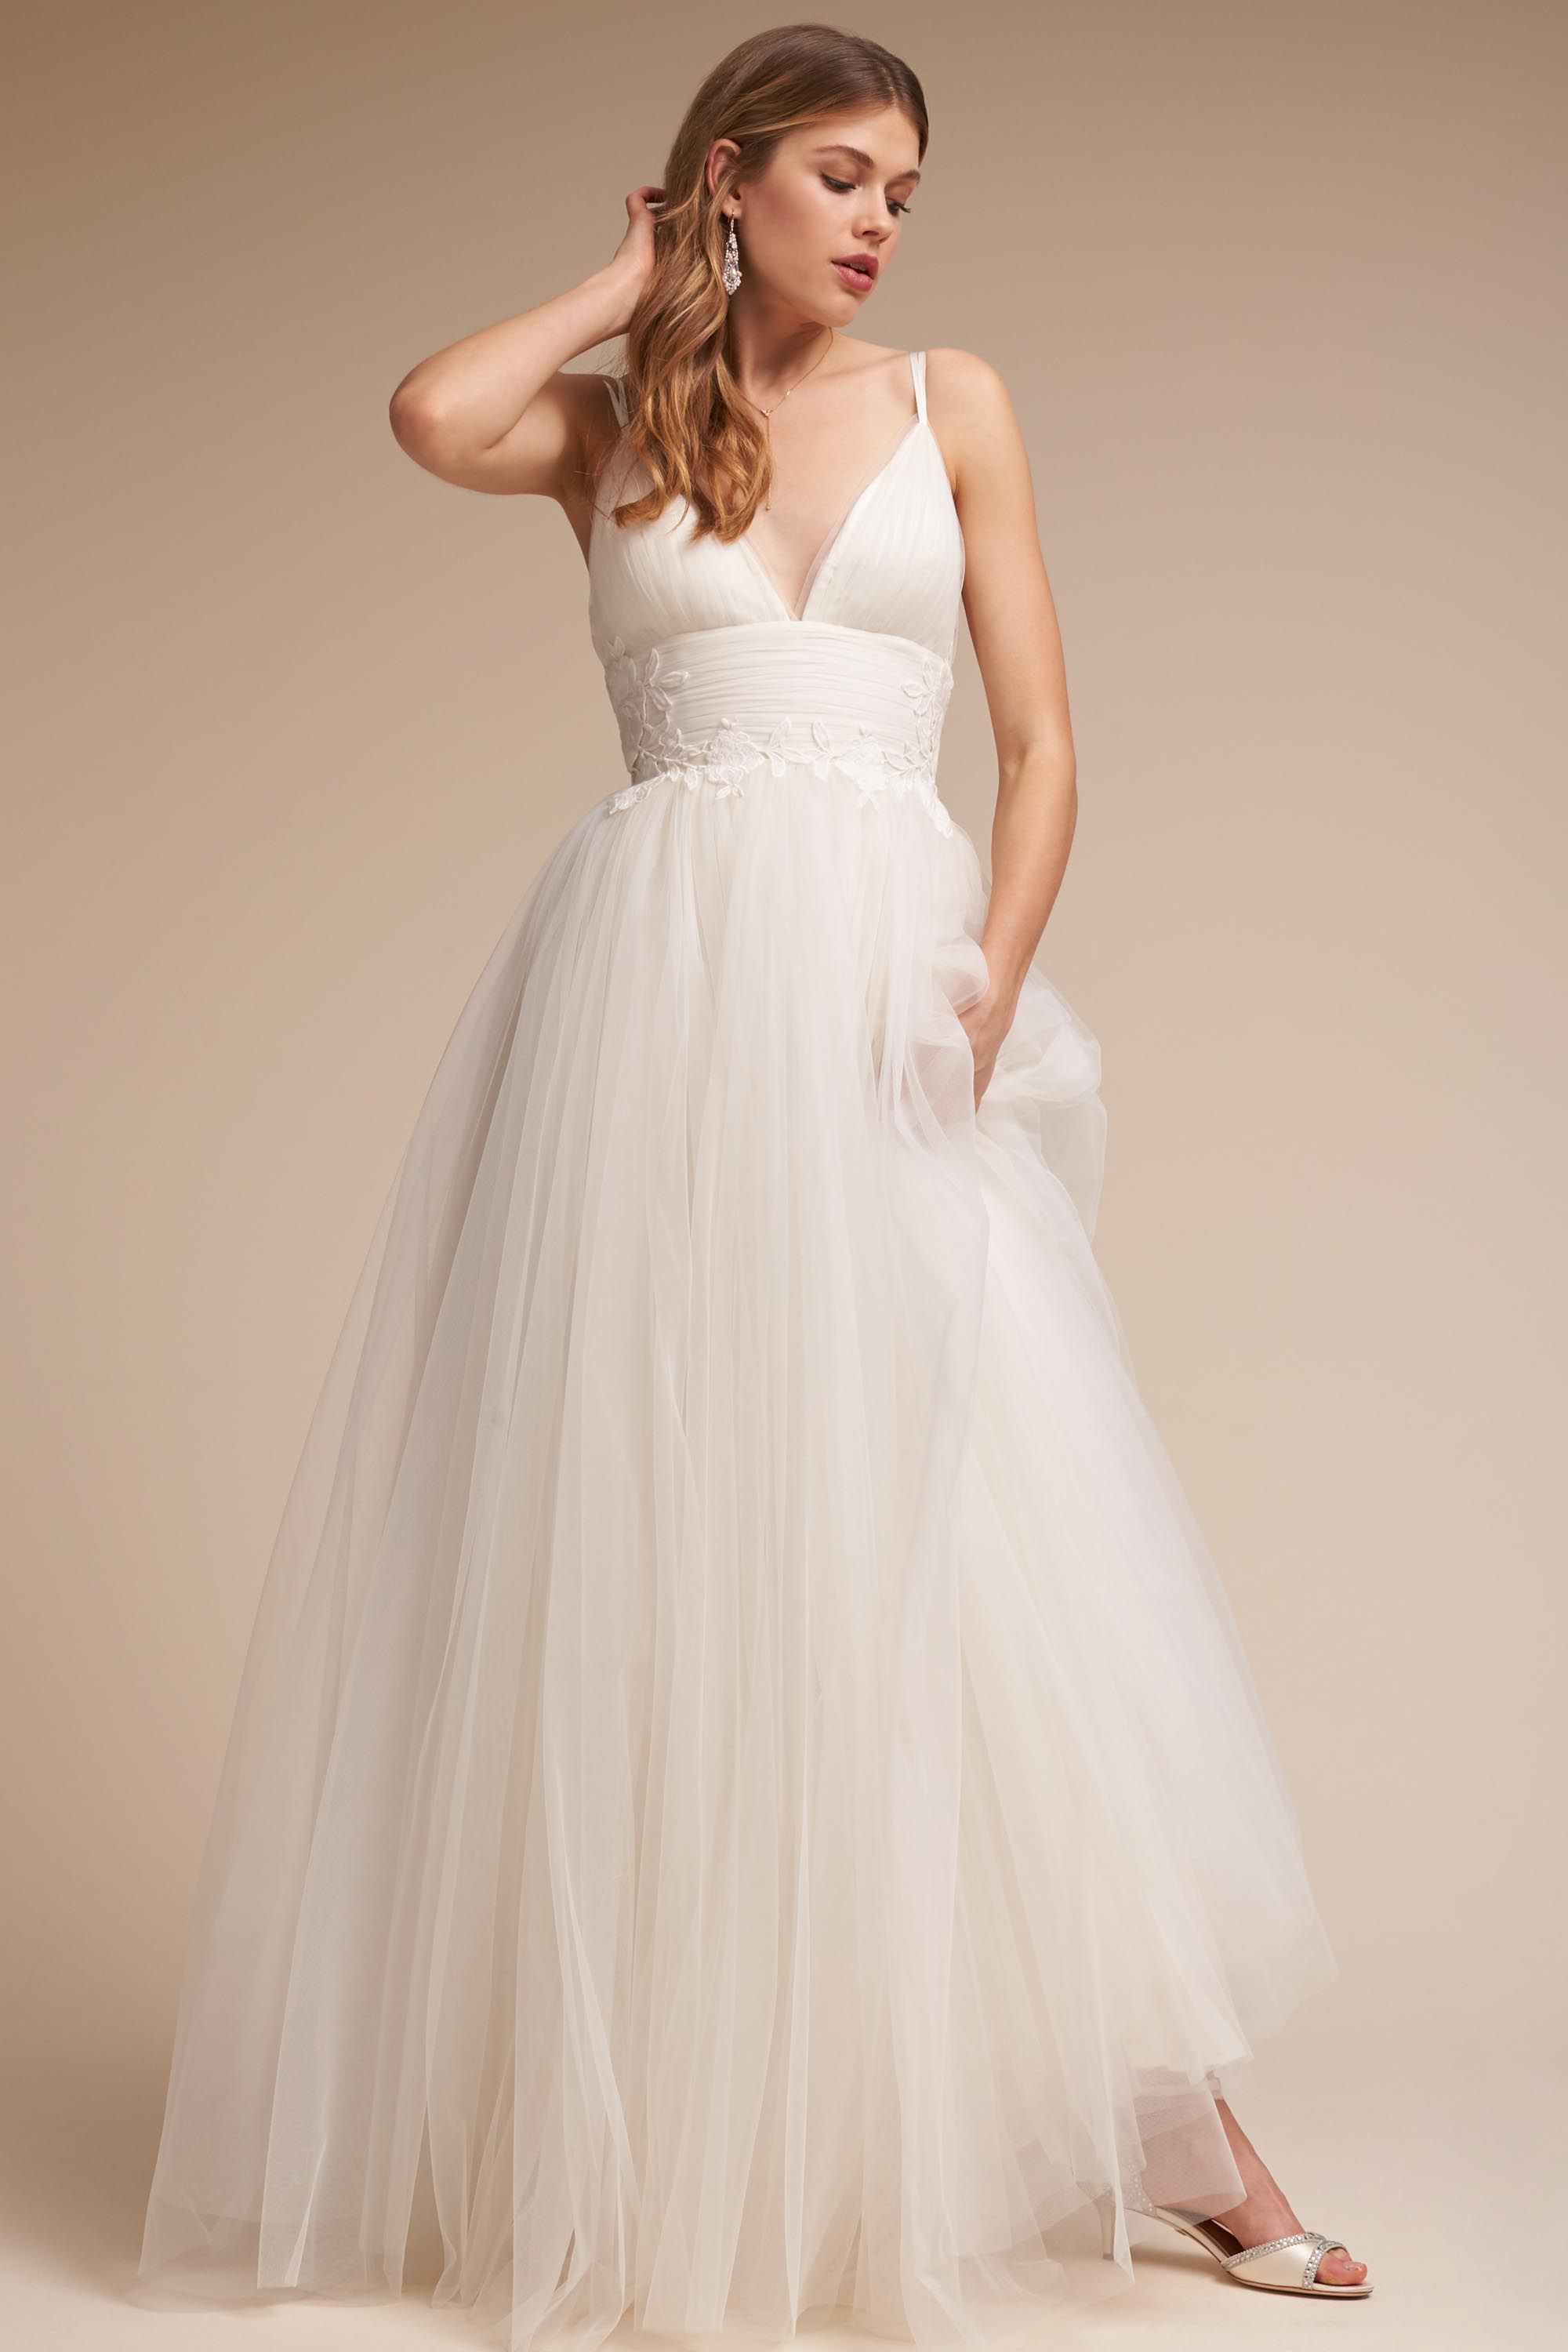 Dream Prom Wedding Dresses